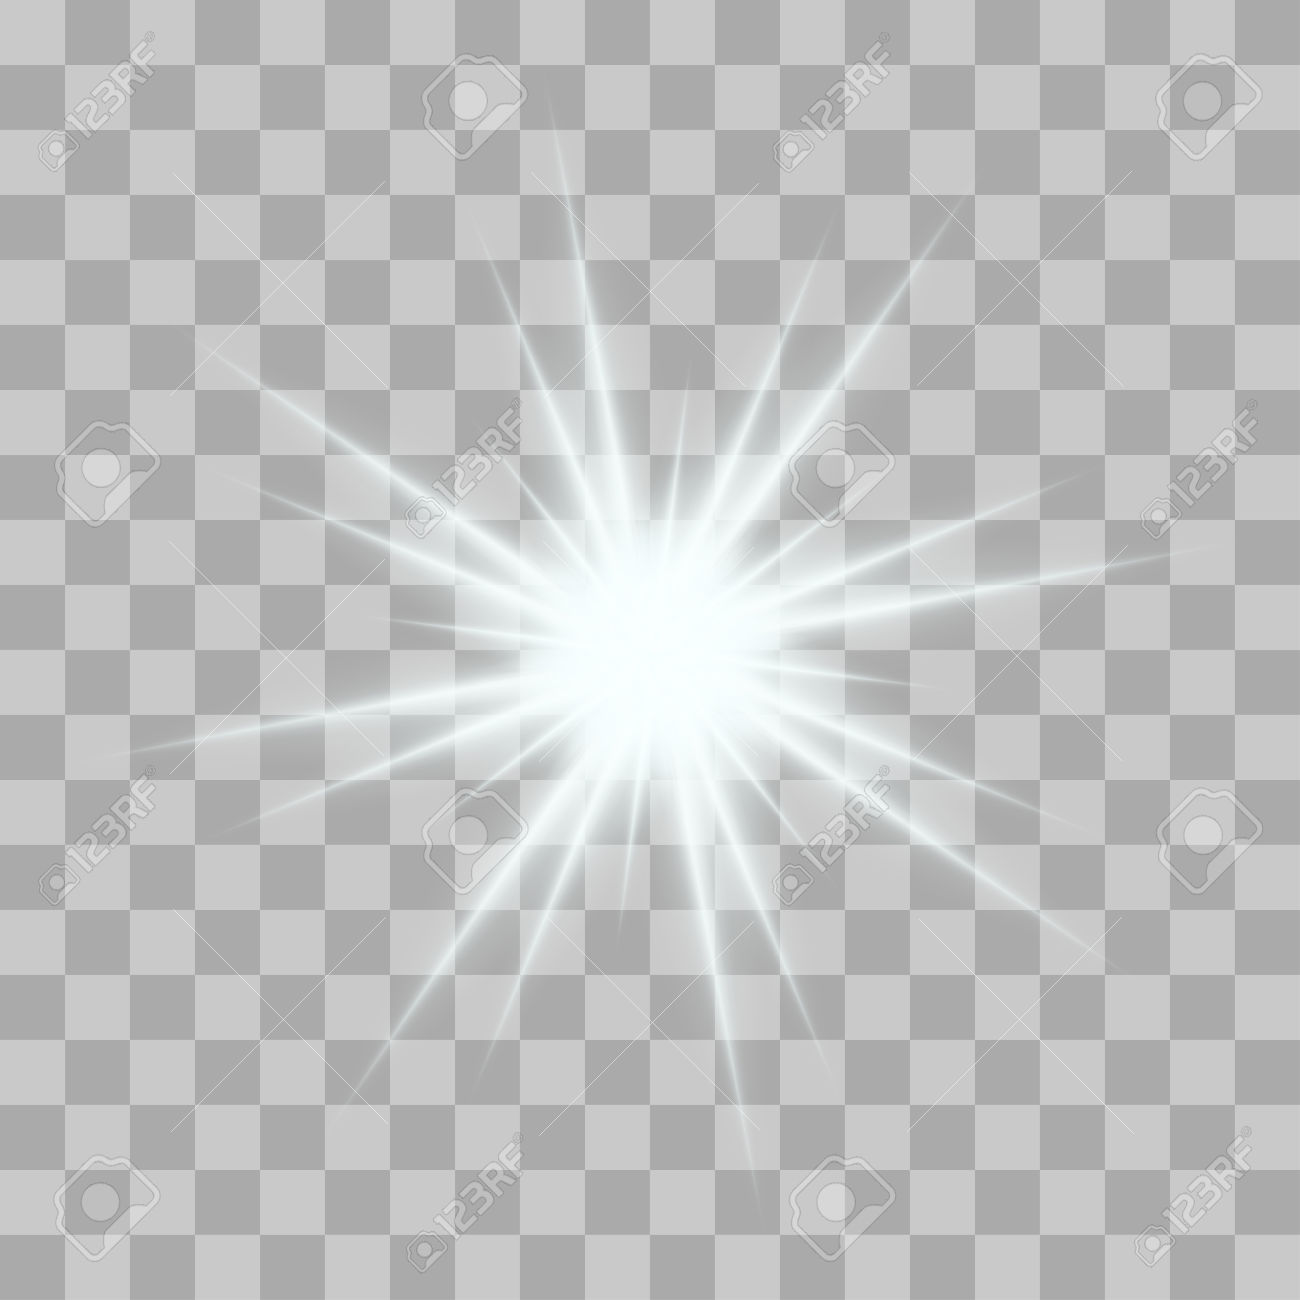 Image - 51267329-Vector-glowing-light-bursts-with-sparkles-on ... for Star Light Effect Png  157uhy